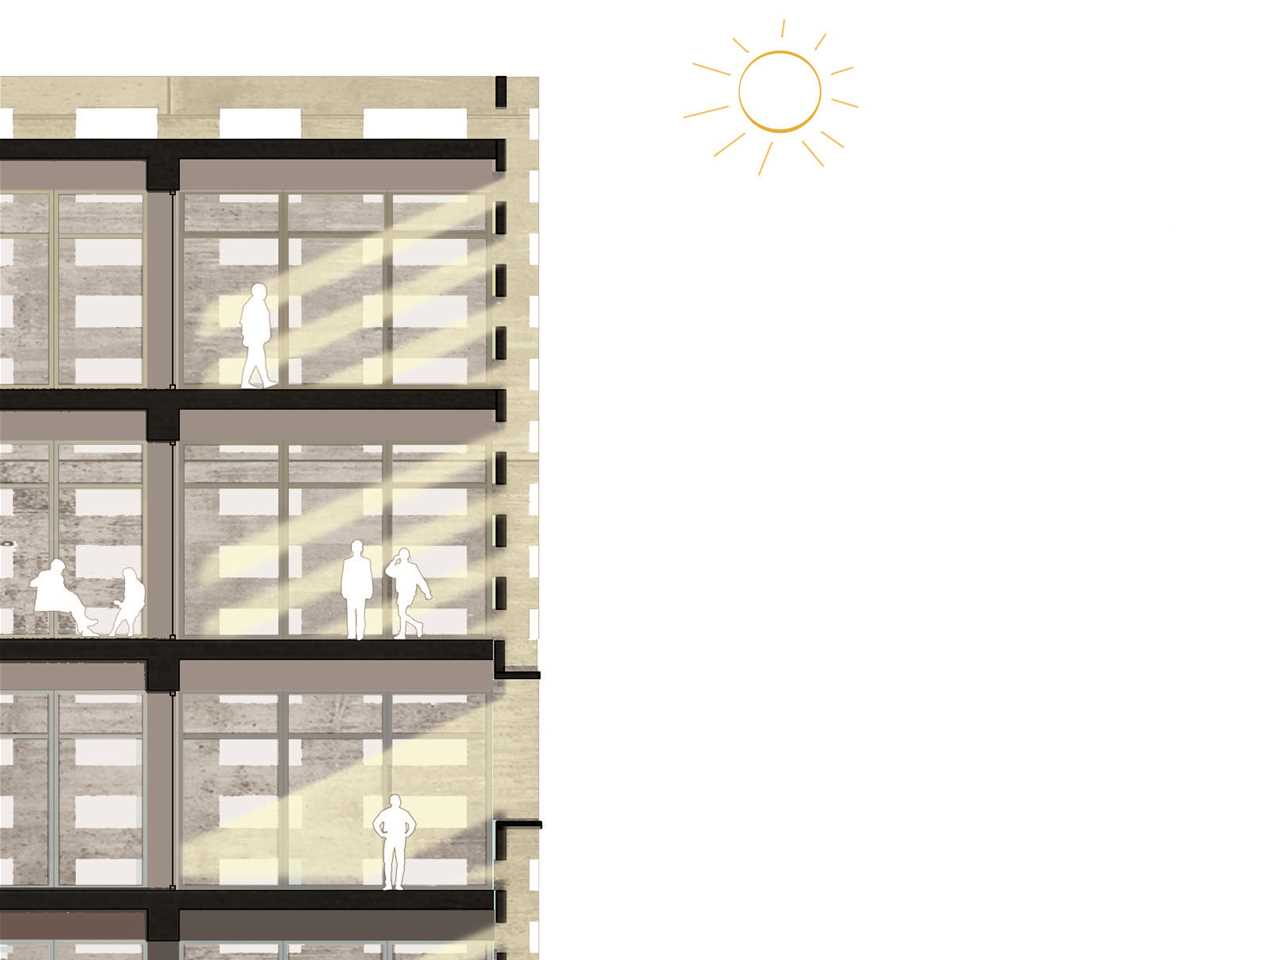 Project entry 2014 Africa Middle East - Weaving Publicness: Socially-integrated office …